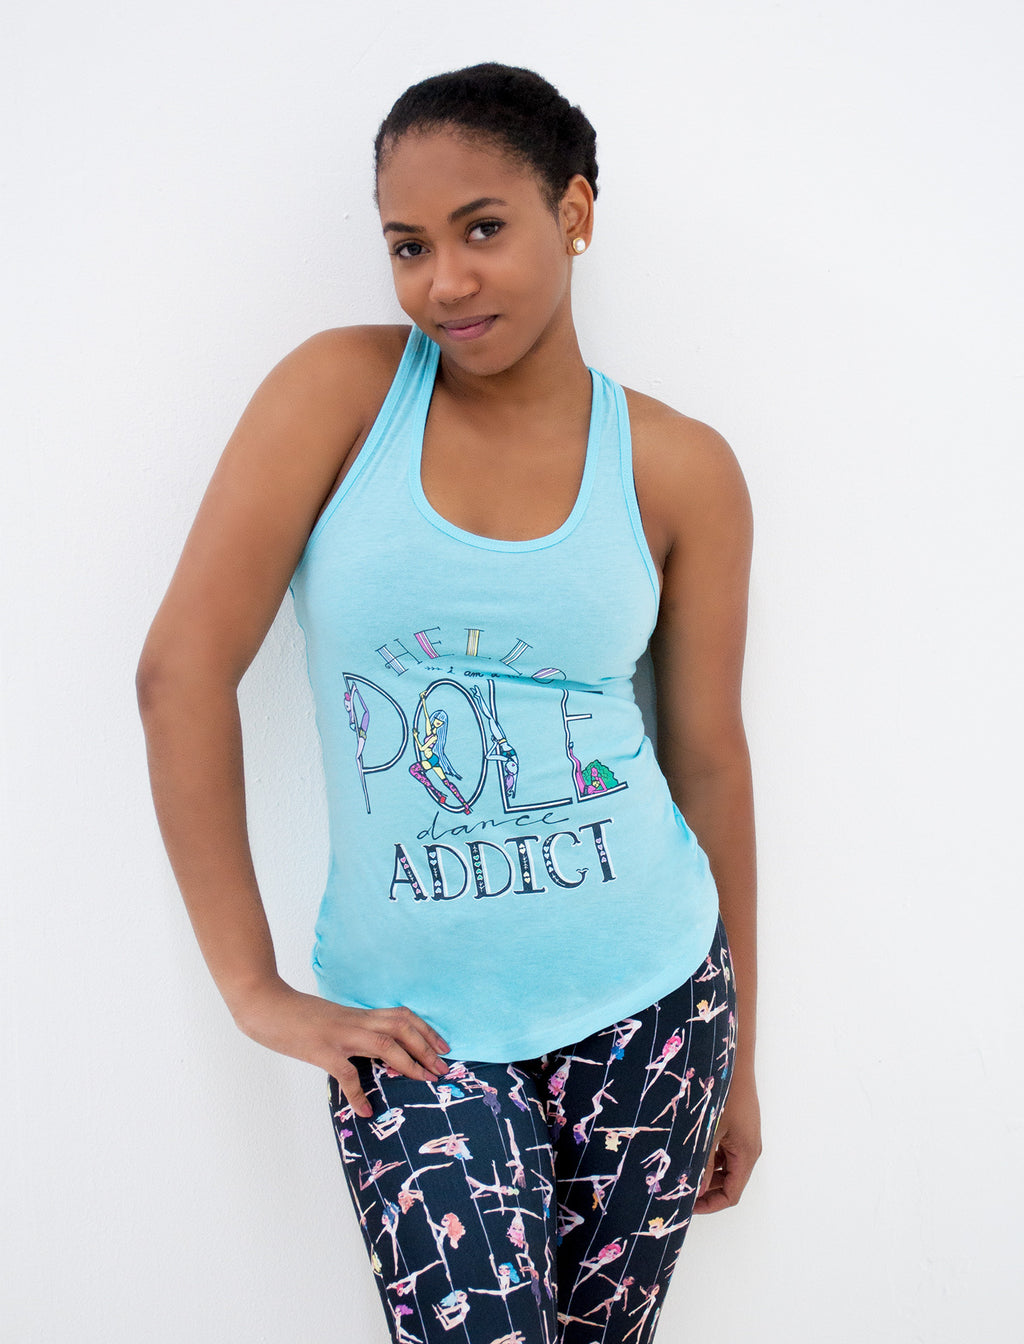 Pole Dancing Addict Racerback Tank - Push + Pole - 1